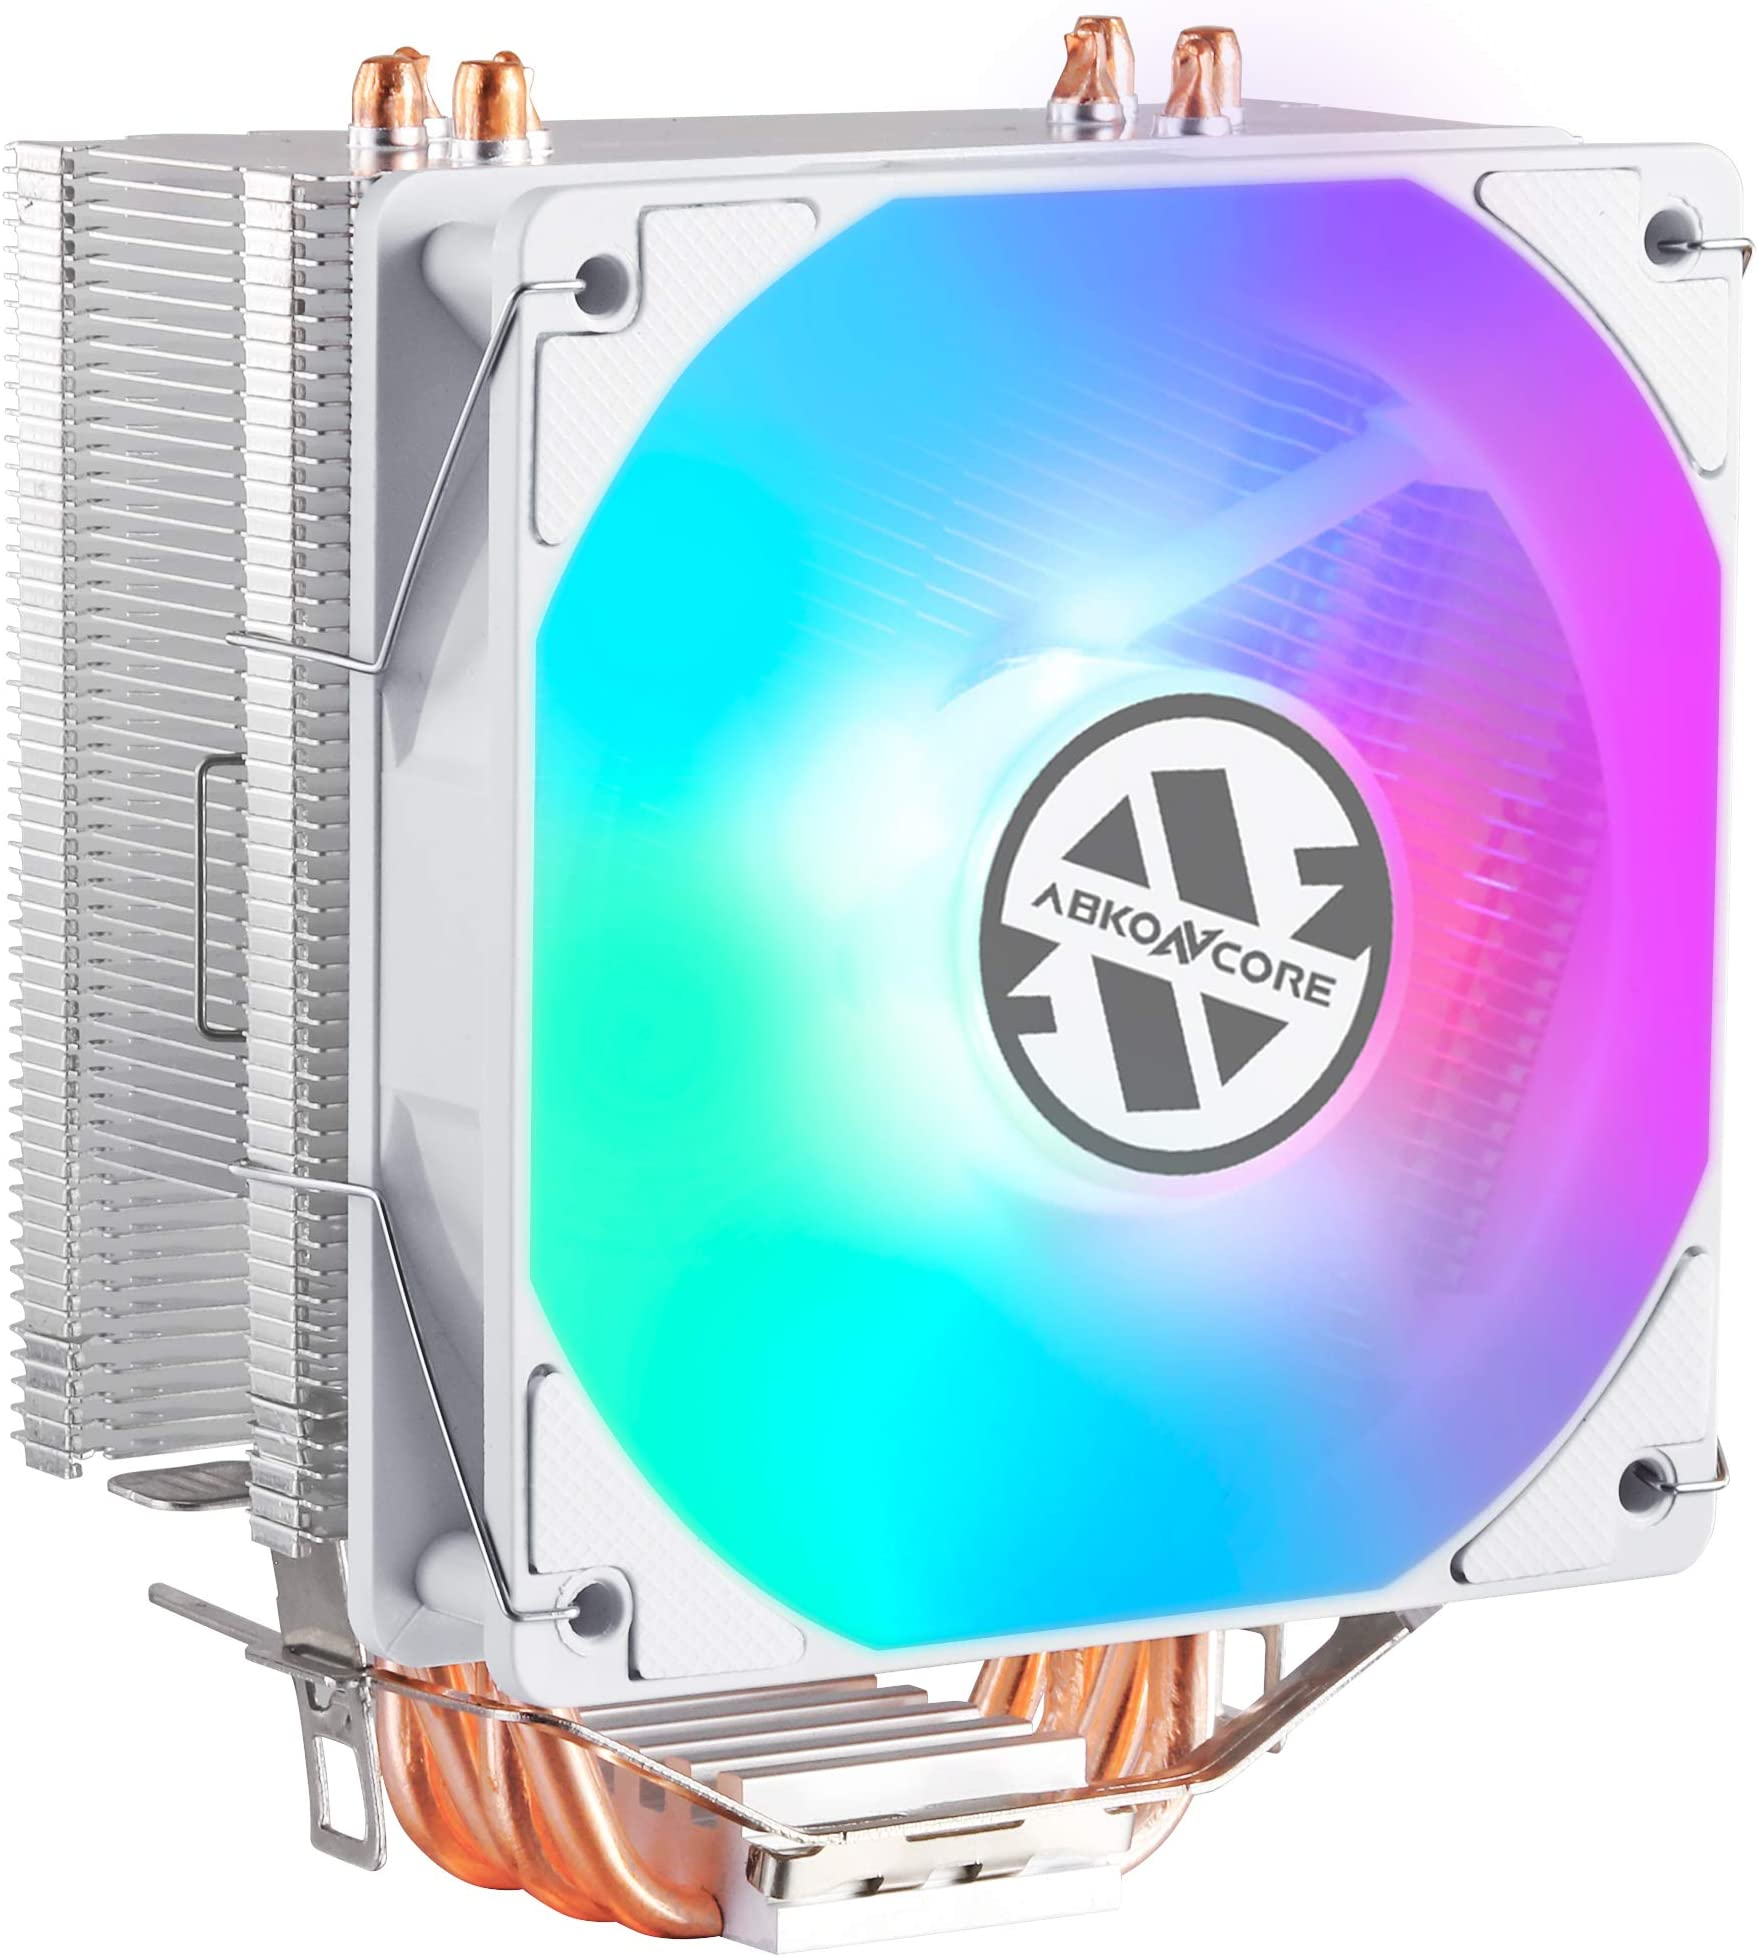 ABKONCORE LED CPU Cooler White CT405W, 120mm PWM Quiet Fan CPU Air Cooler with Hydro Bearing and Anti-Vibration Pads, 4 Direct Contact Heatpipes, LED CPU Fan for Intel LGA1155/1156/1366/2011, AMD AM4